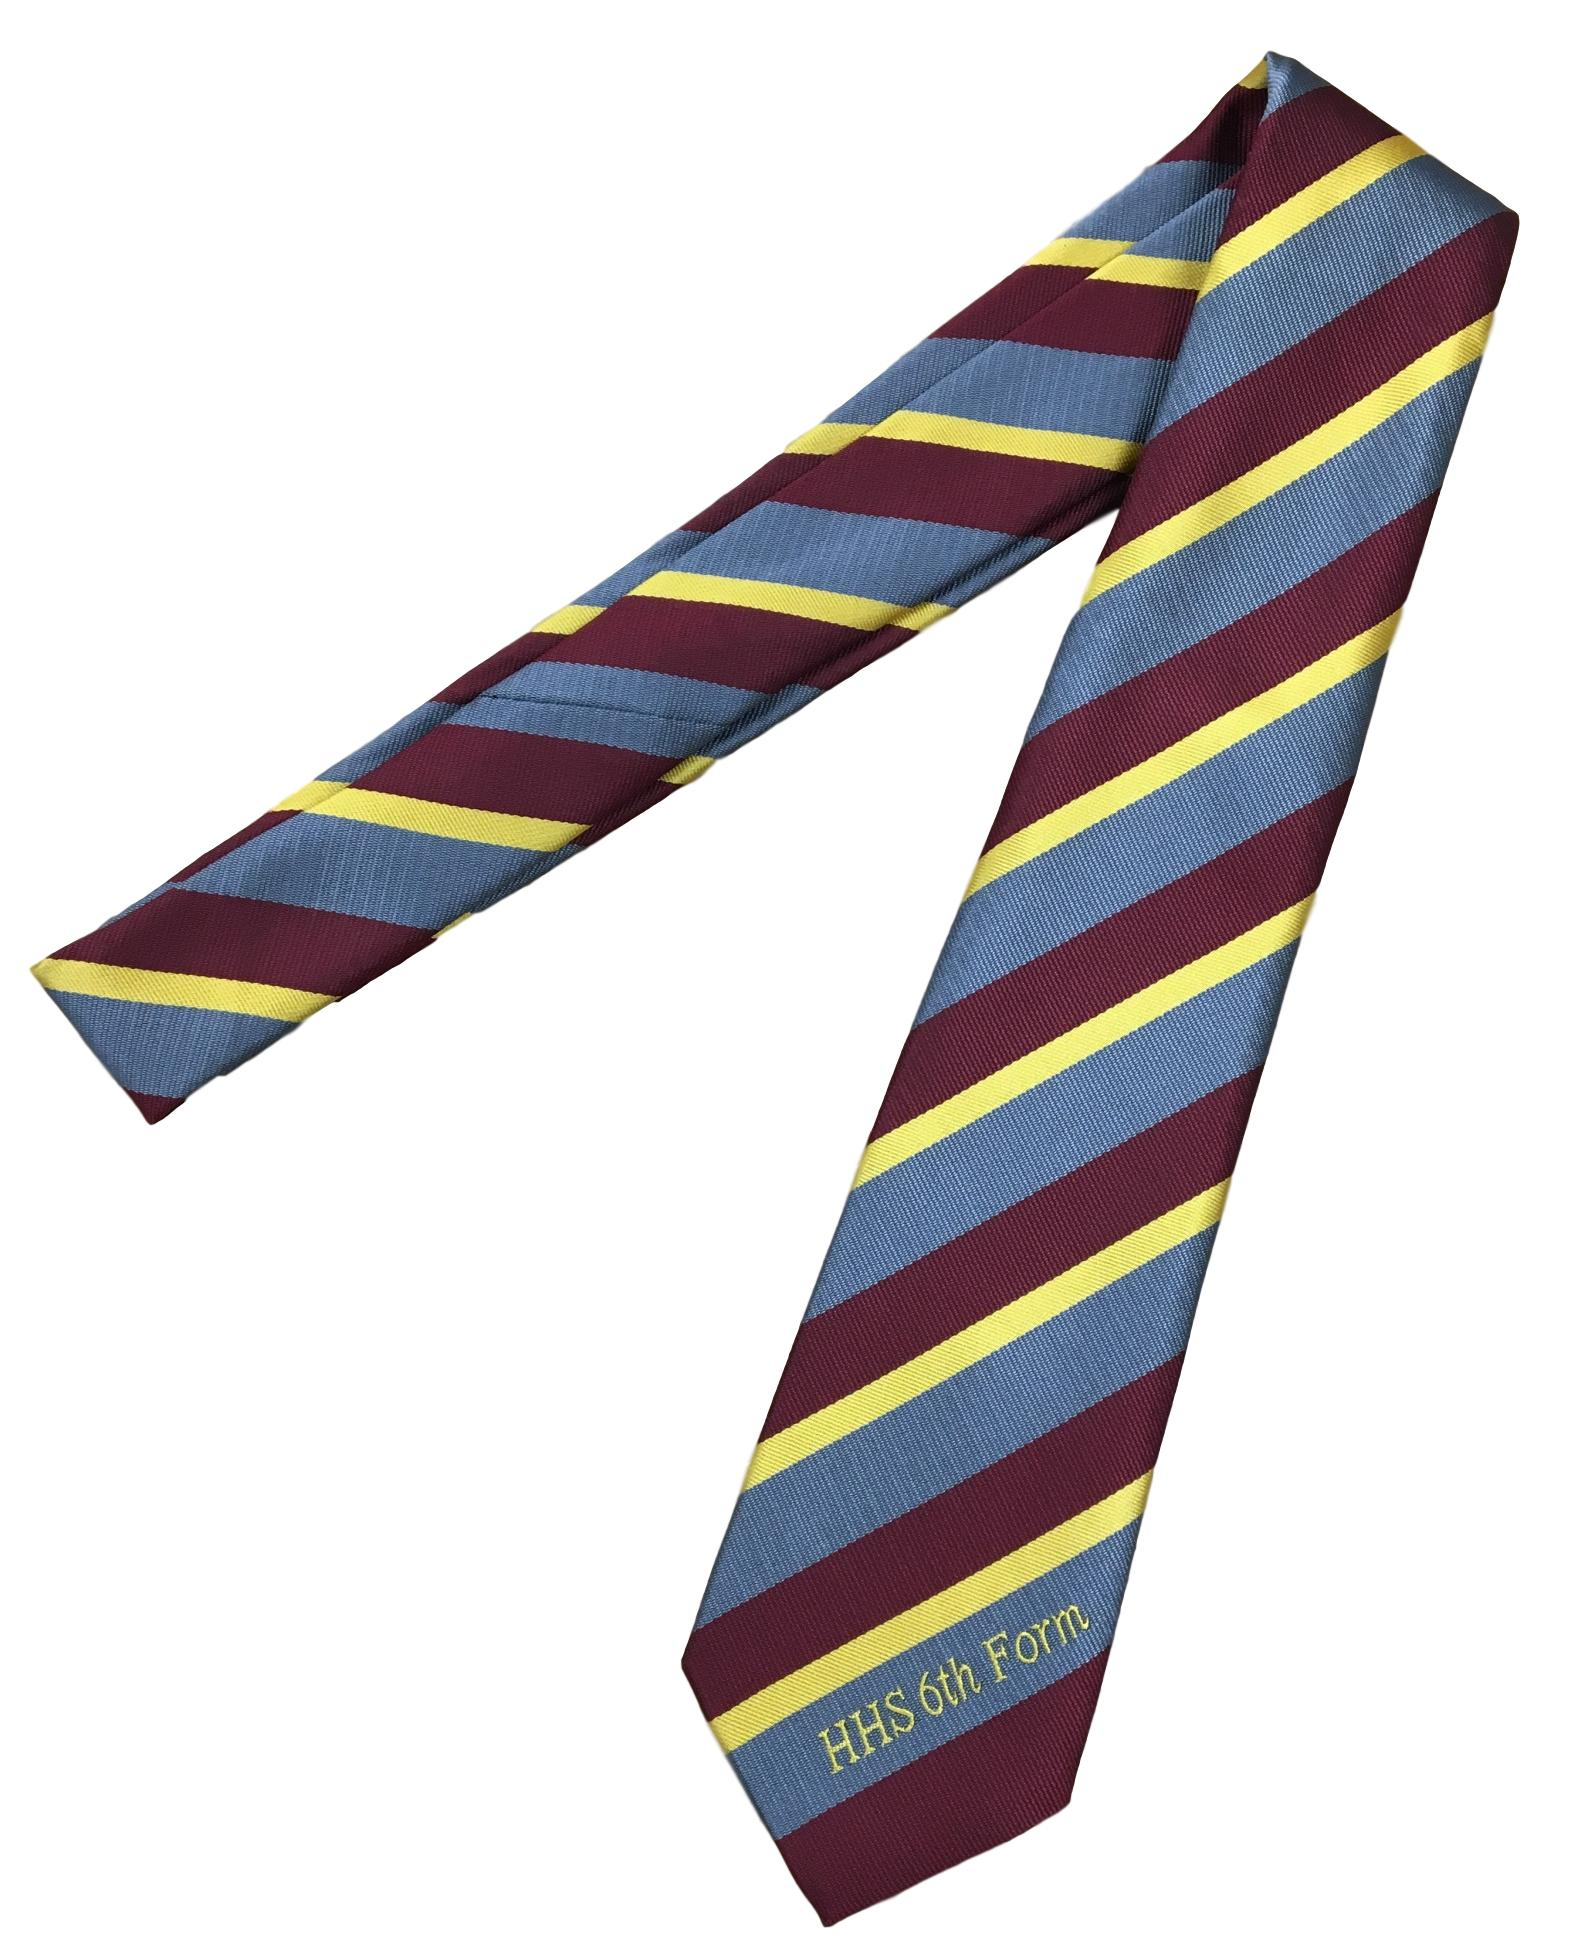 Hawthorn High School 6th Form Tie: Straight (Years 12-13)